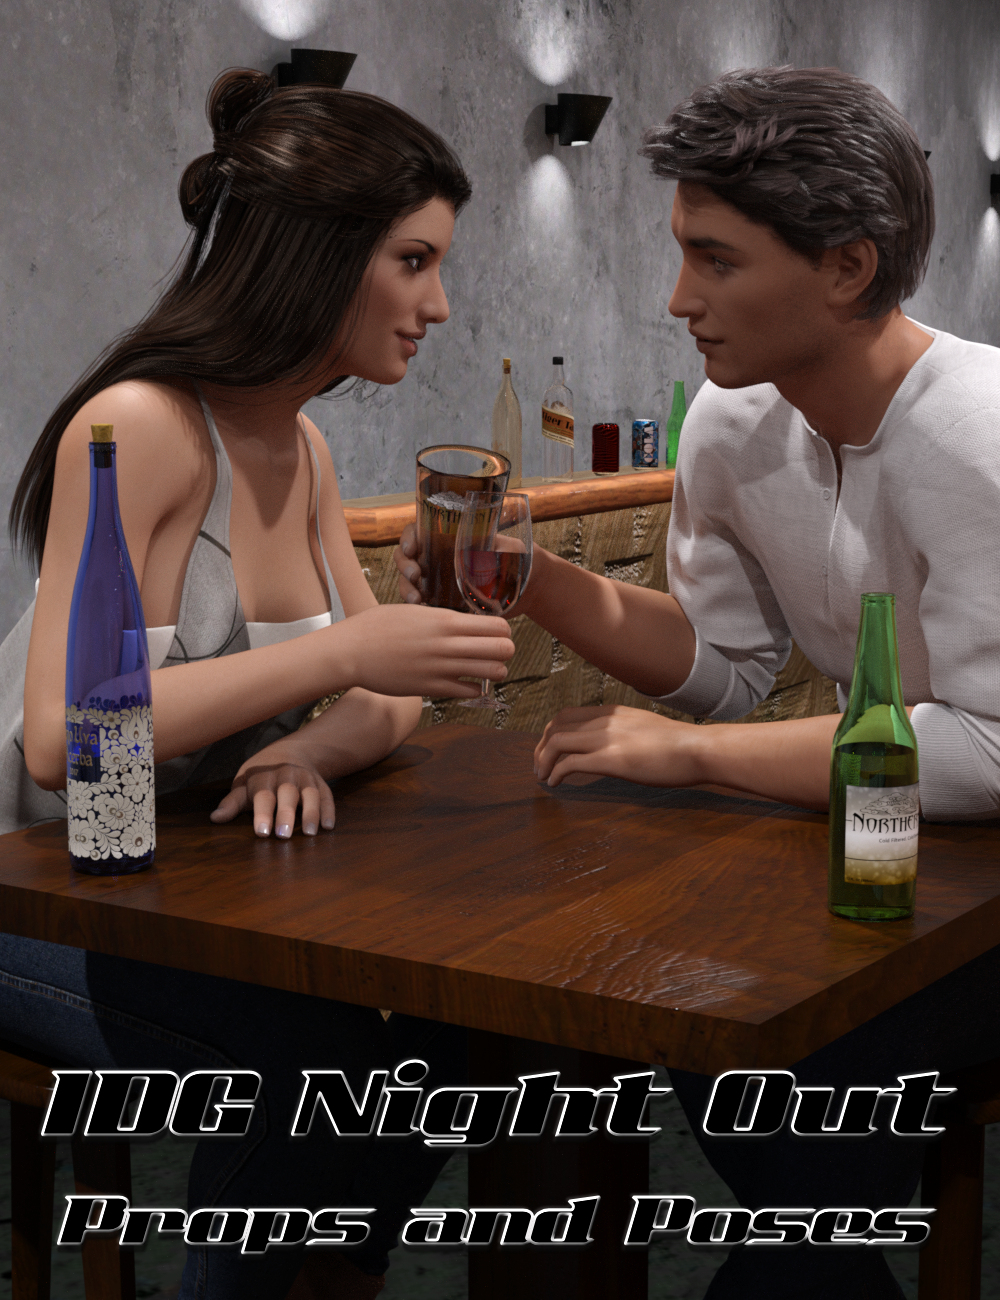 IDG Night Out Props and Poses by: IDG DesignsDestinysGardenInaneGlory, 3D Models by Daz 3D